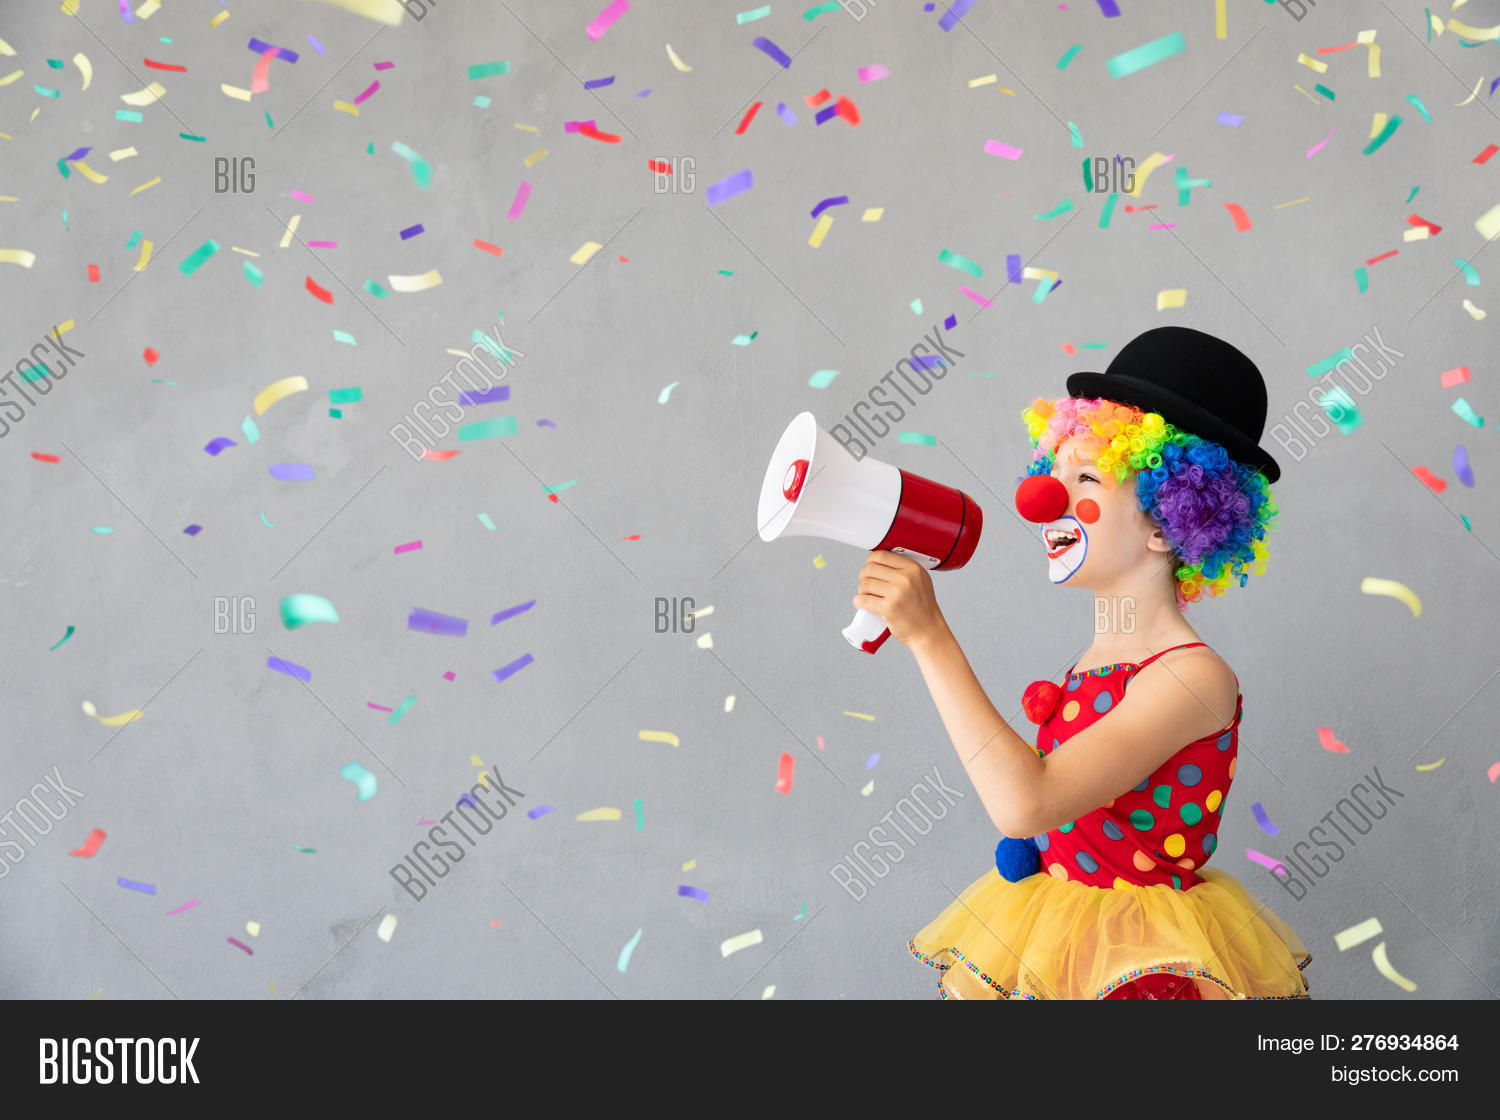 1,announce,april,bow,carnival,caucasian,celebration,cheerful,child,clown,colorful,communication,concept,confetti,copy,costume,day,face,fools,fun,funny,game,girl,halloween,happy,holiday,humor,joy,kid,megaphone,message,multicolor,nose,one,party,person,play,playful,poppers,portrait,shout,smile,space,speak,spring,surprise,tease,unusual,wig